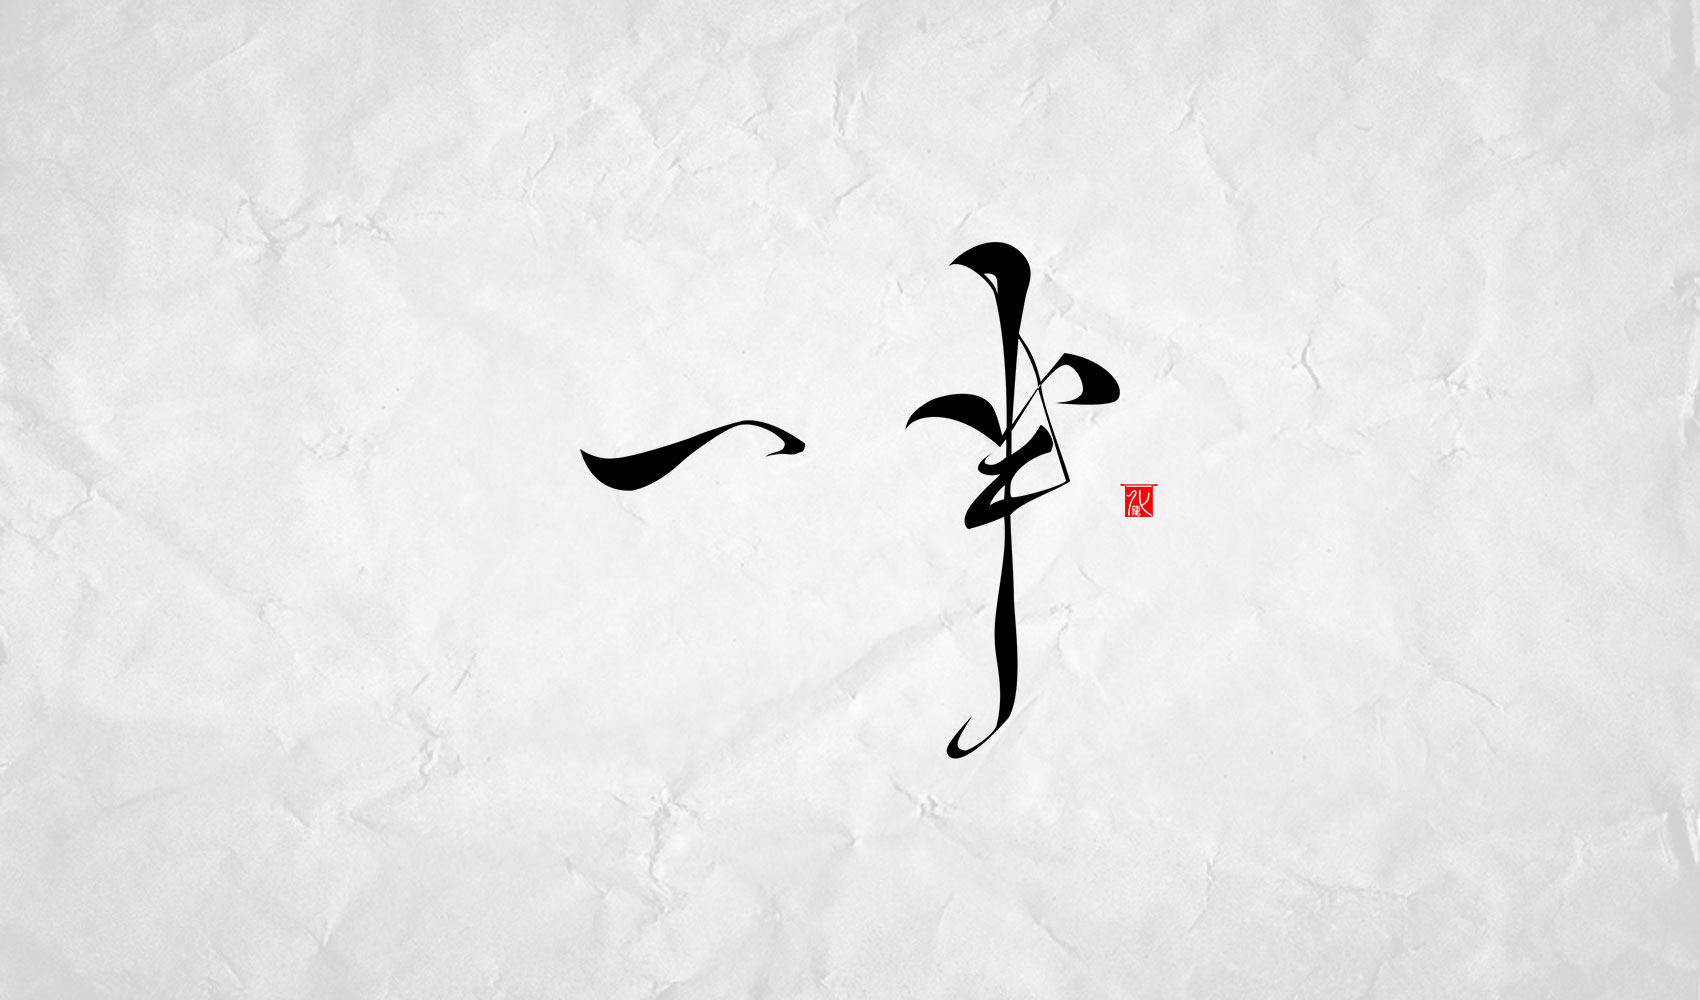 chinesefontdesign.com 2017 08 26 13 09 50 628691 11P Hand painted Chinese font creation